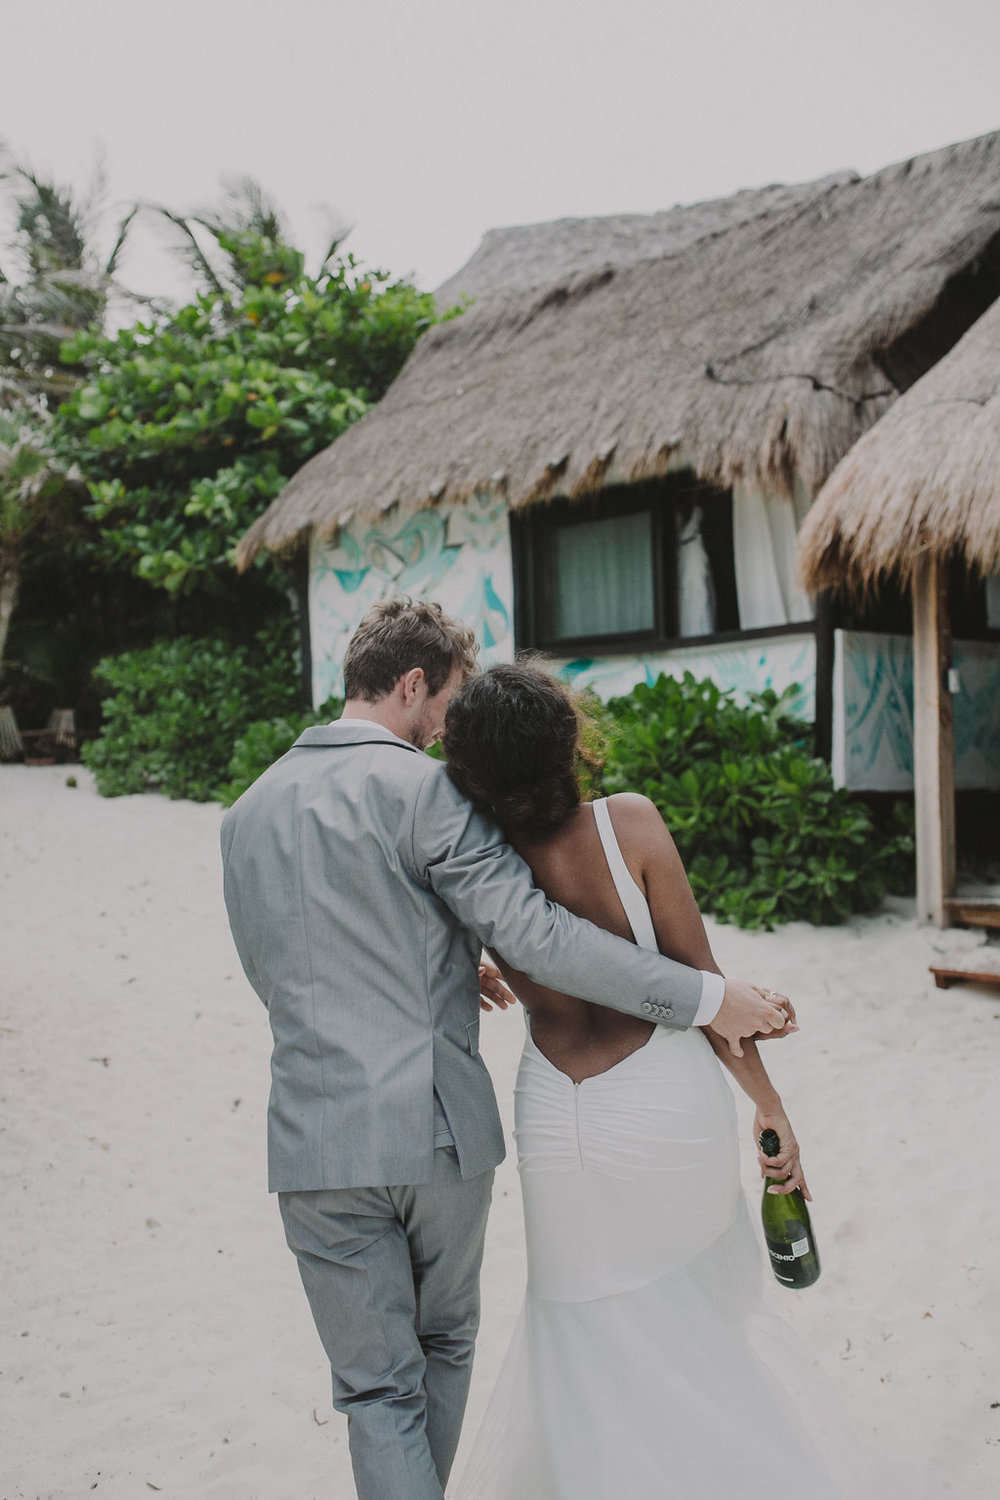 casa_violeta_wedding_tulum_photography_planner_rock_and_roll_chellisemichaelphotography_kerrybeachevents-8403.jpg